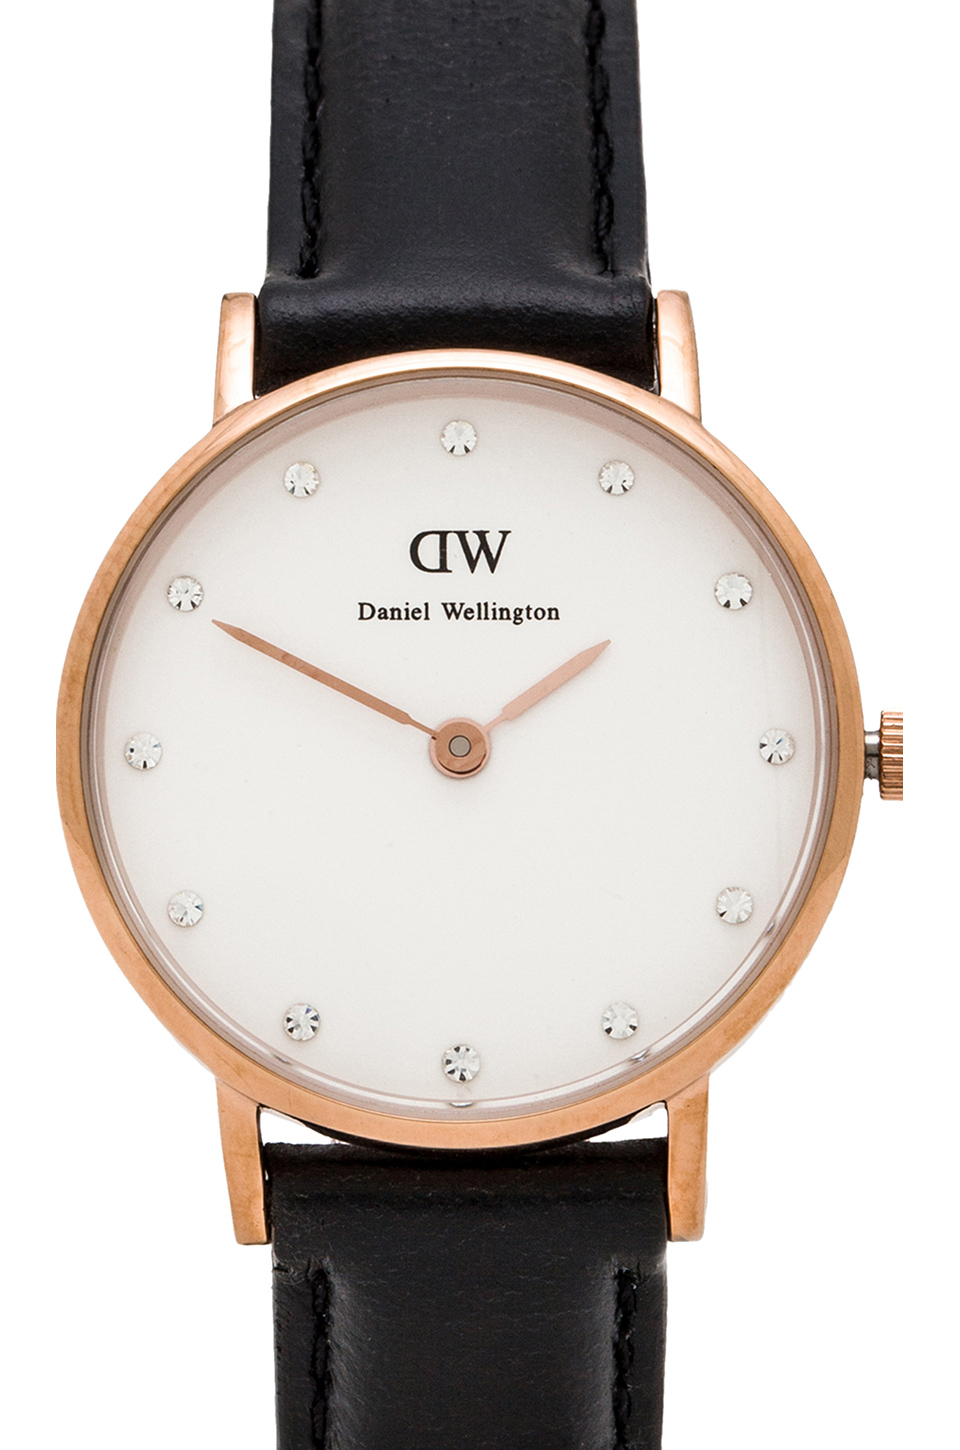 Daniel wellington classy sheffield lady 26mm in rose gold from revolveclothing.com